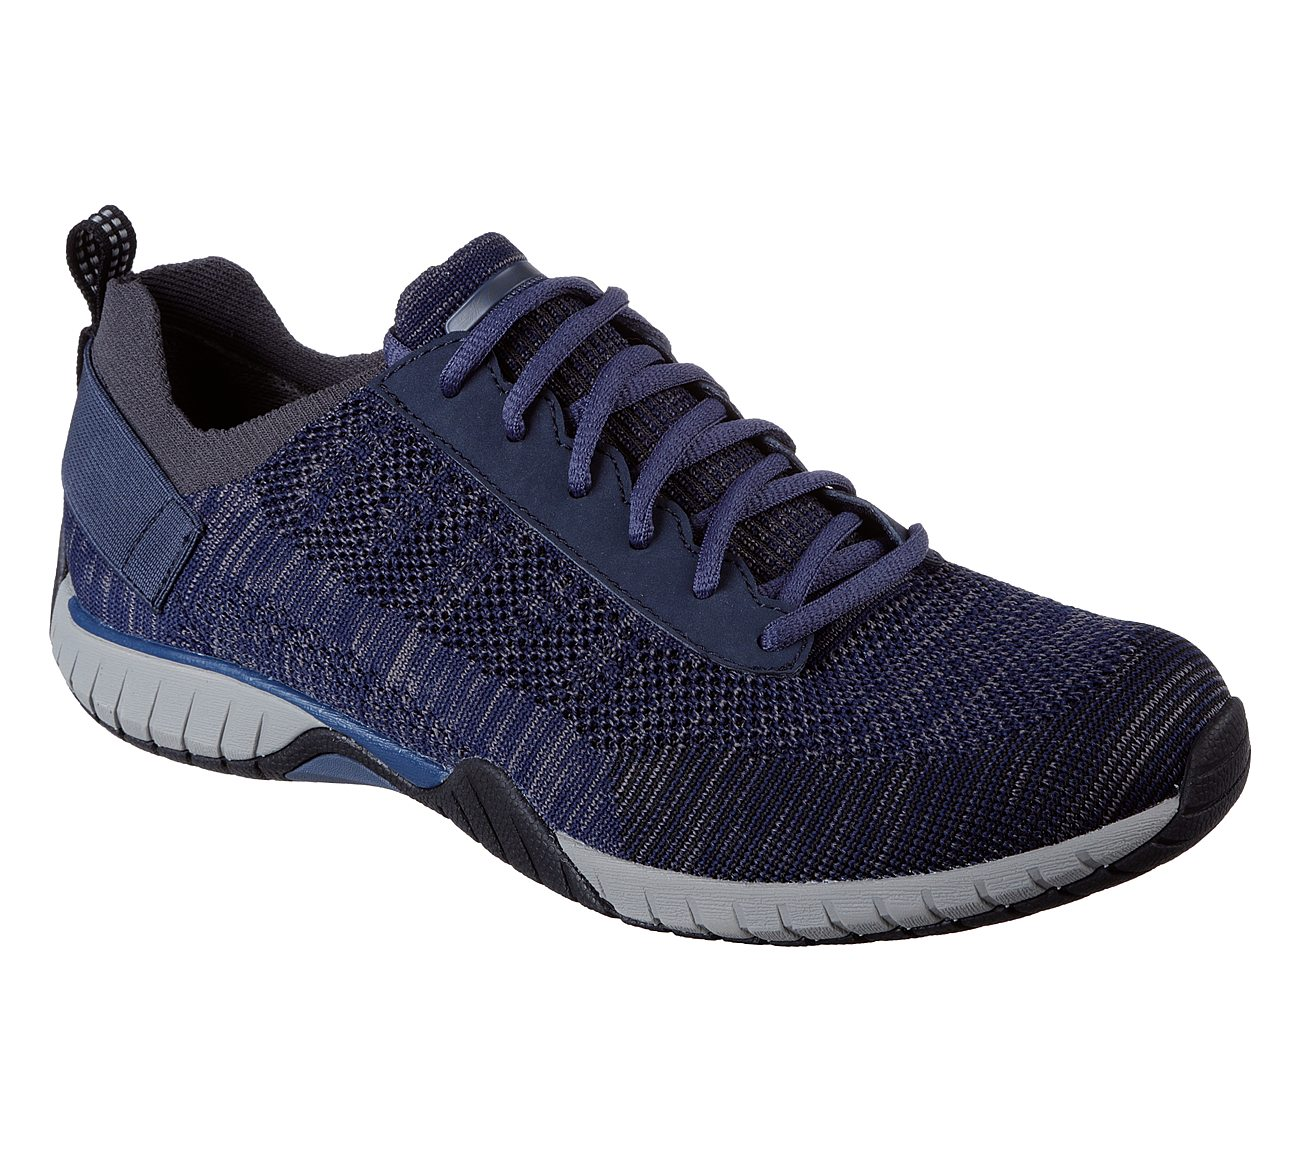 d35dad0a72a9e Buy SKECHERS Sendro - Malego USA Casuals Shoes only  50.00